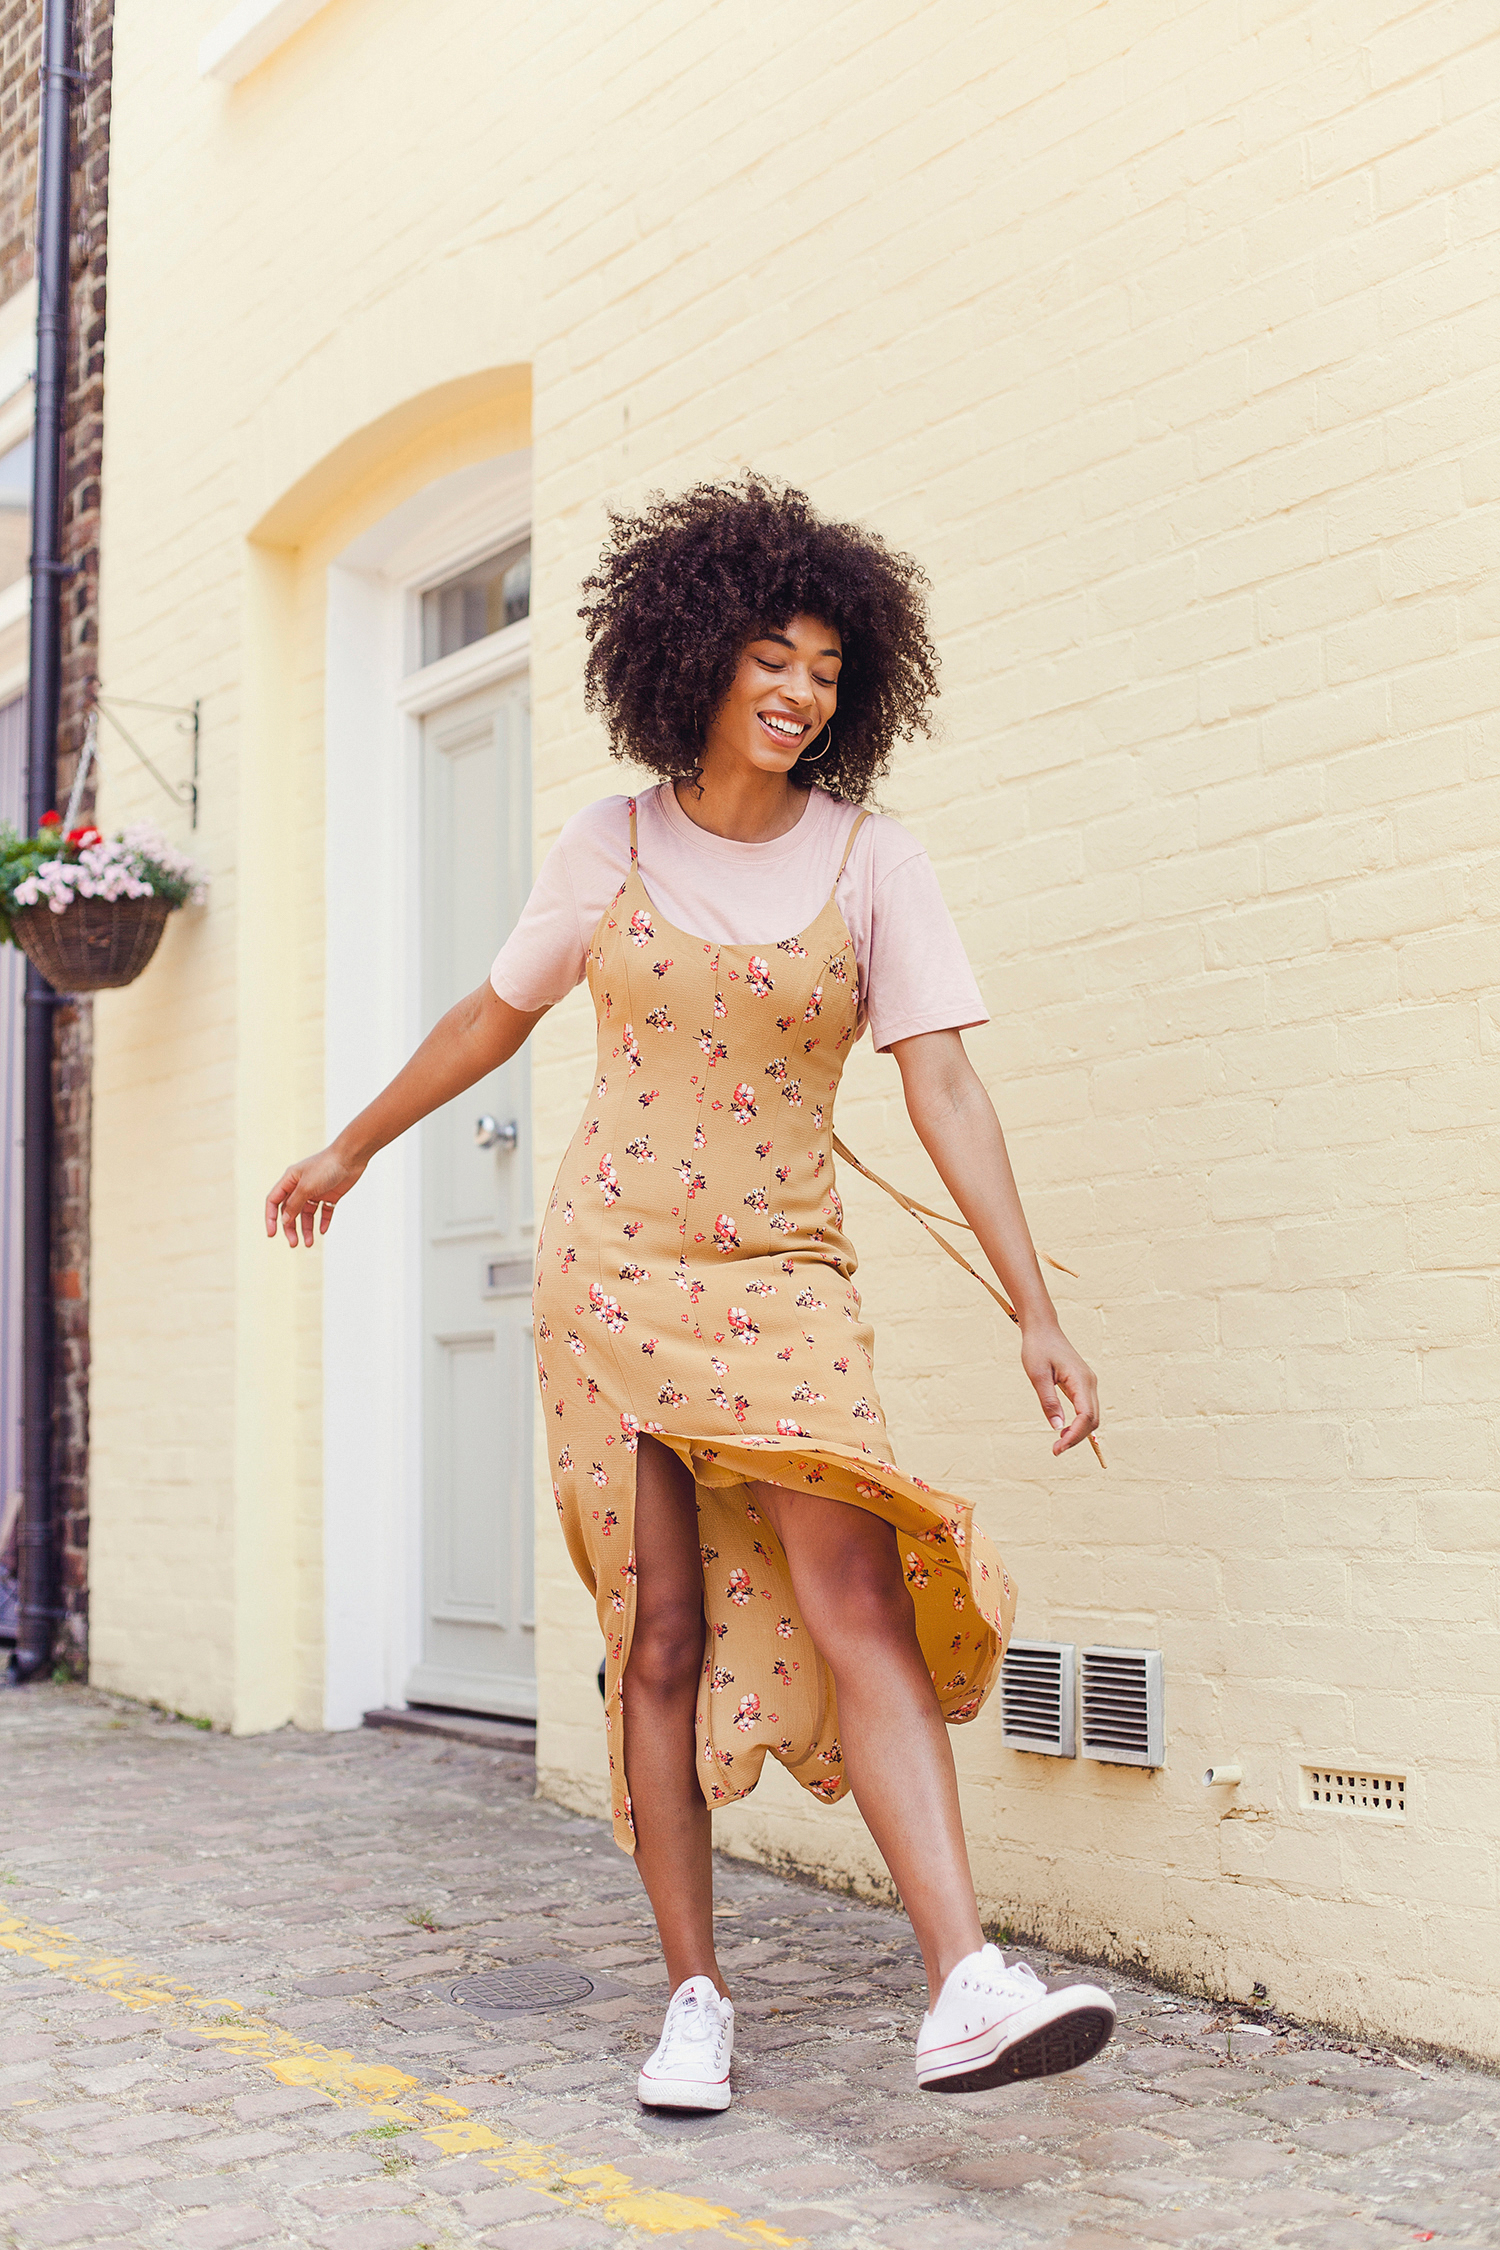 Portrait of fashion blogger Lesley from Asos in Notting Hill by Ailera Stone. Twirling in a floral yellow dress in front of a yellow wall